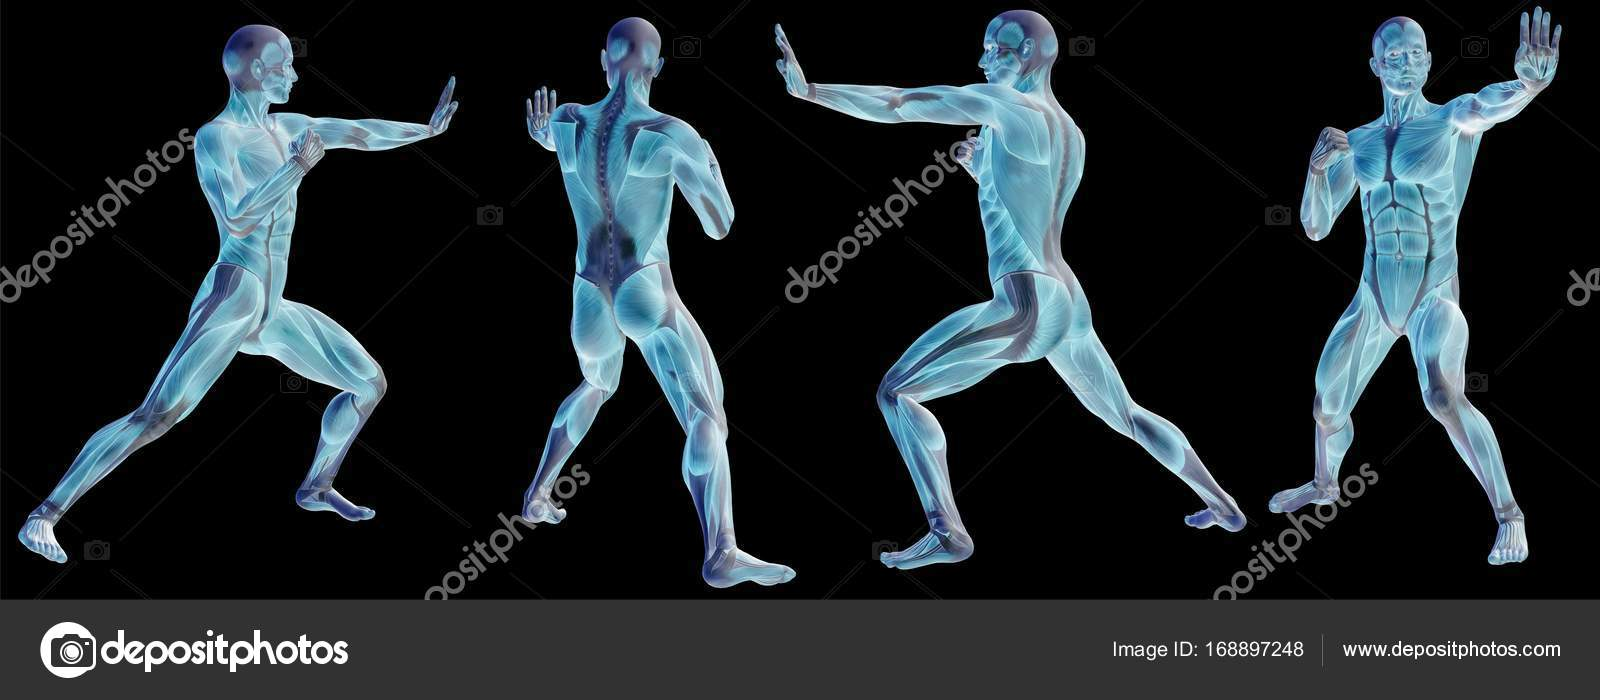 Concept Or Conceptual Human Or Man 3d Anatomy Body With Muscle